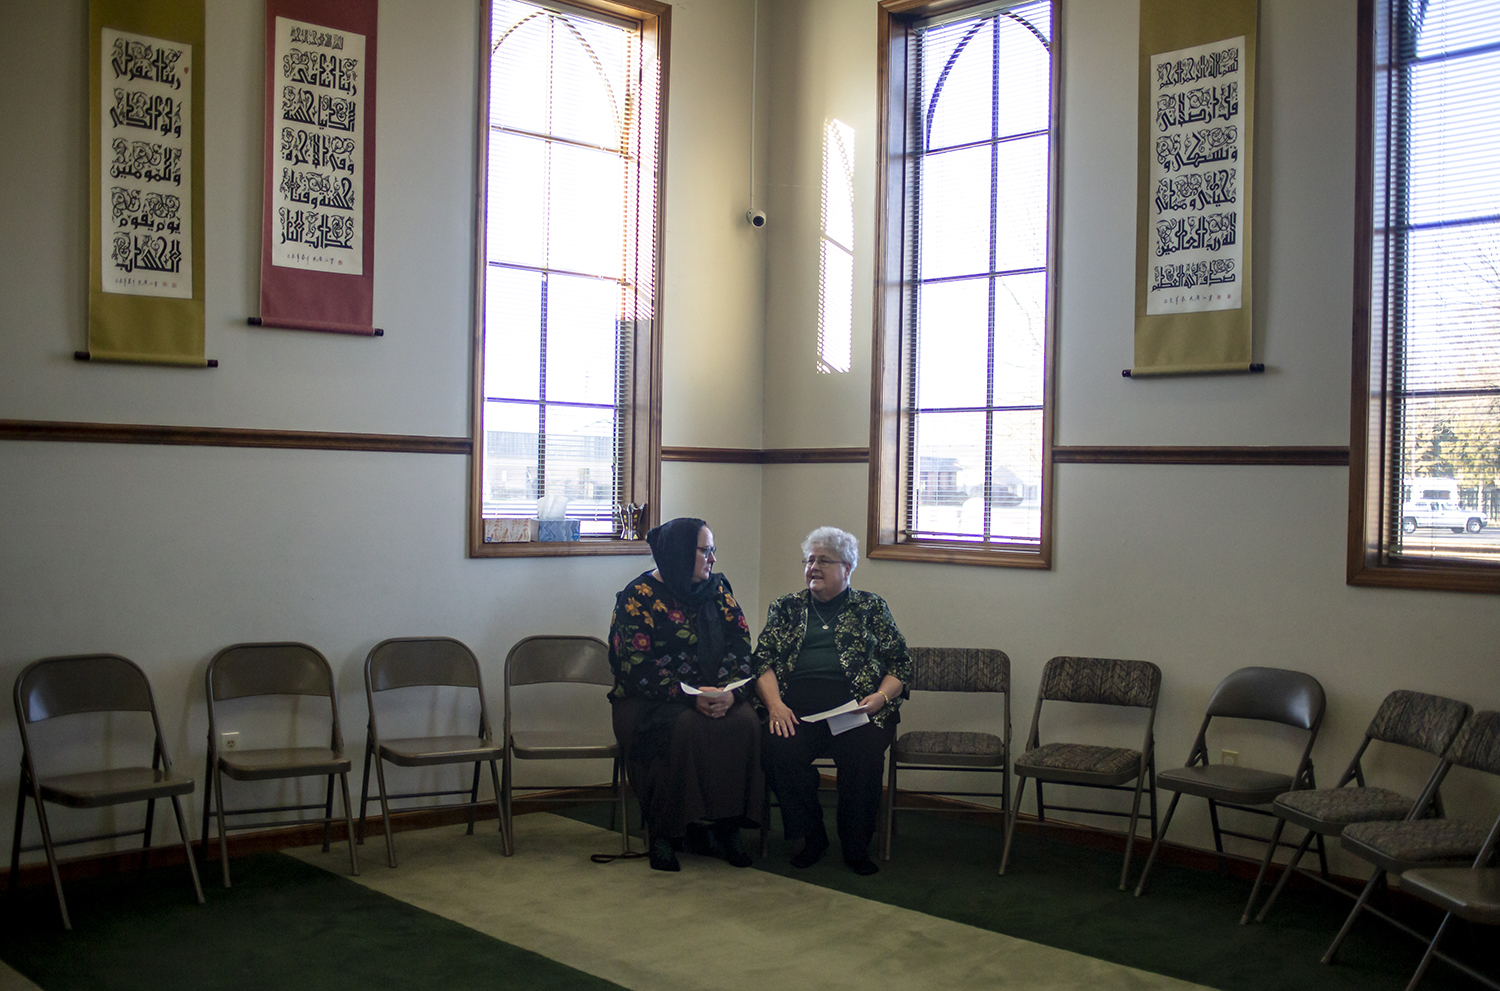 Rev. Dr. Bobbi Dykema, of the First Church of the Brethren, left, and Sister Barbara Blesse, of the Dominican Sisters of Springfield, visit with each other prior to the start of a vigil of solidarity & support for the Islamic community and the New Zealand shooting victims hosted by the Greater Springfield Interfaith Association and the Islamic Society Of Greater Springfield at the Islamic Society of Greater Springfield mosque, Sunday, March 17, 2019, in Springfield, Ill. [Justin L. Fowler/The State Journal-Register]